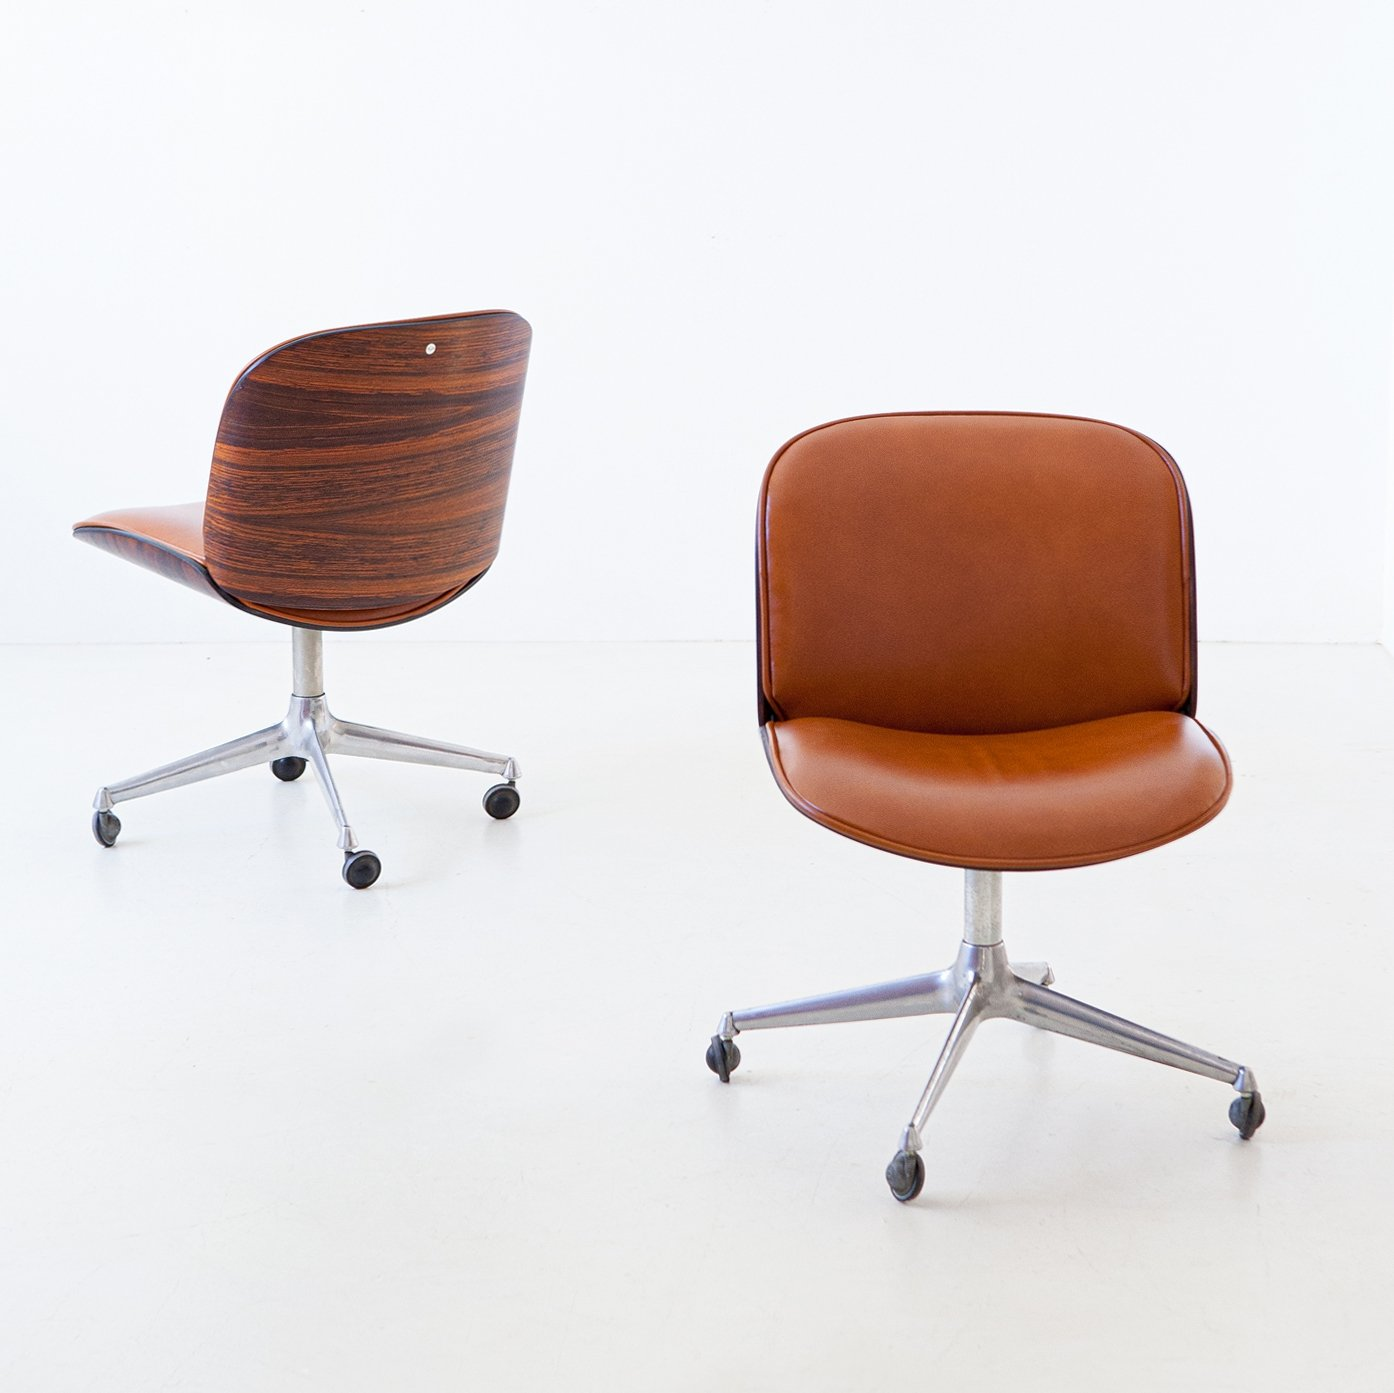 Picture of: Rosewood Cognac Leather Swivel Chair By Ico Parisi For Mim Roma 1950s 130506